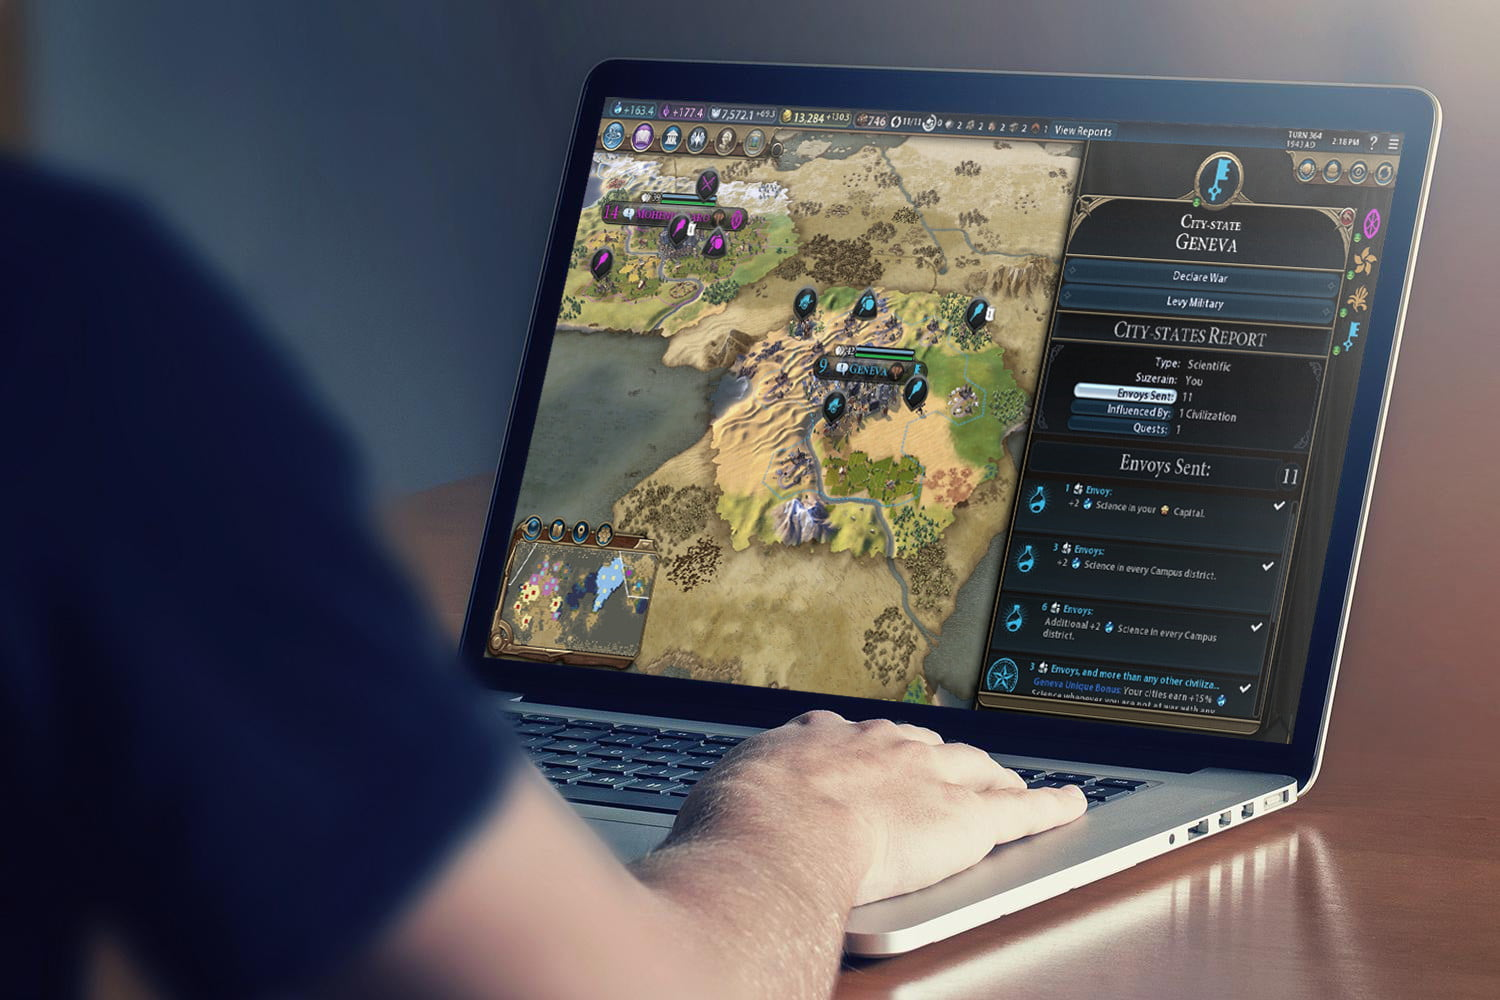 Mac Gaming is Dying, But Who's To Blame? | Digital Trends